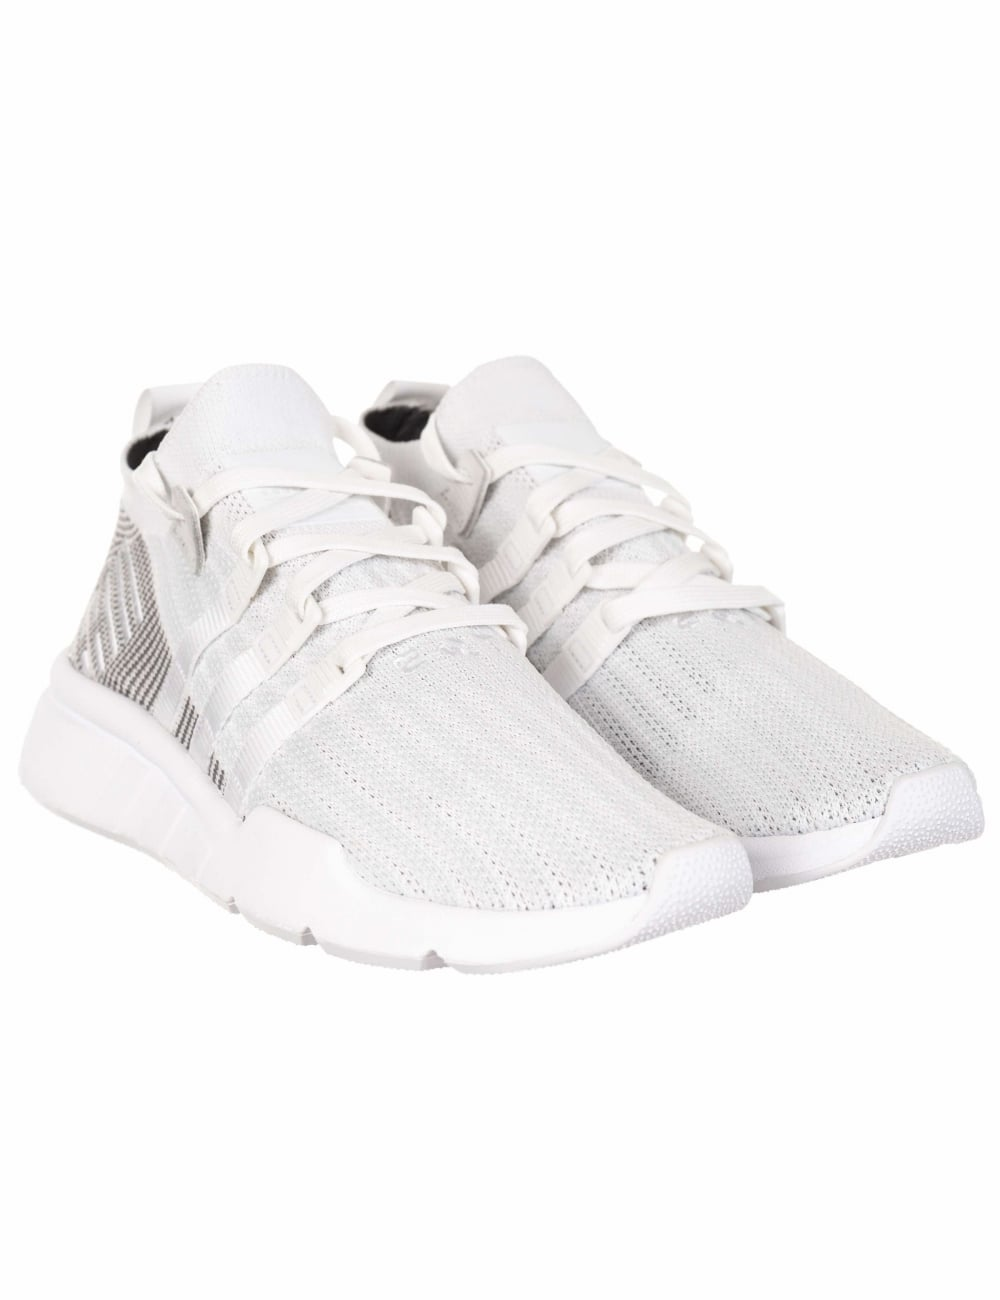 Adidas Originals EQT Support Mid ADV Primeknit Trainers - Mid White Grey -  Footwear from Fat Buddha Store UK 80381cc2e5b5